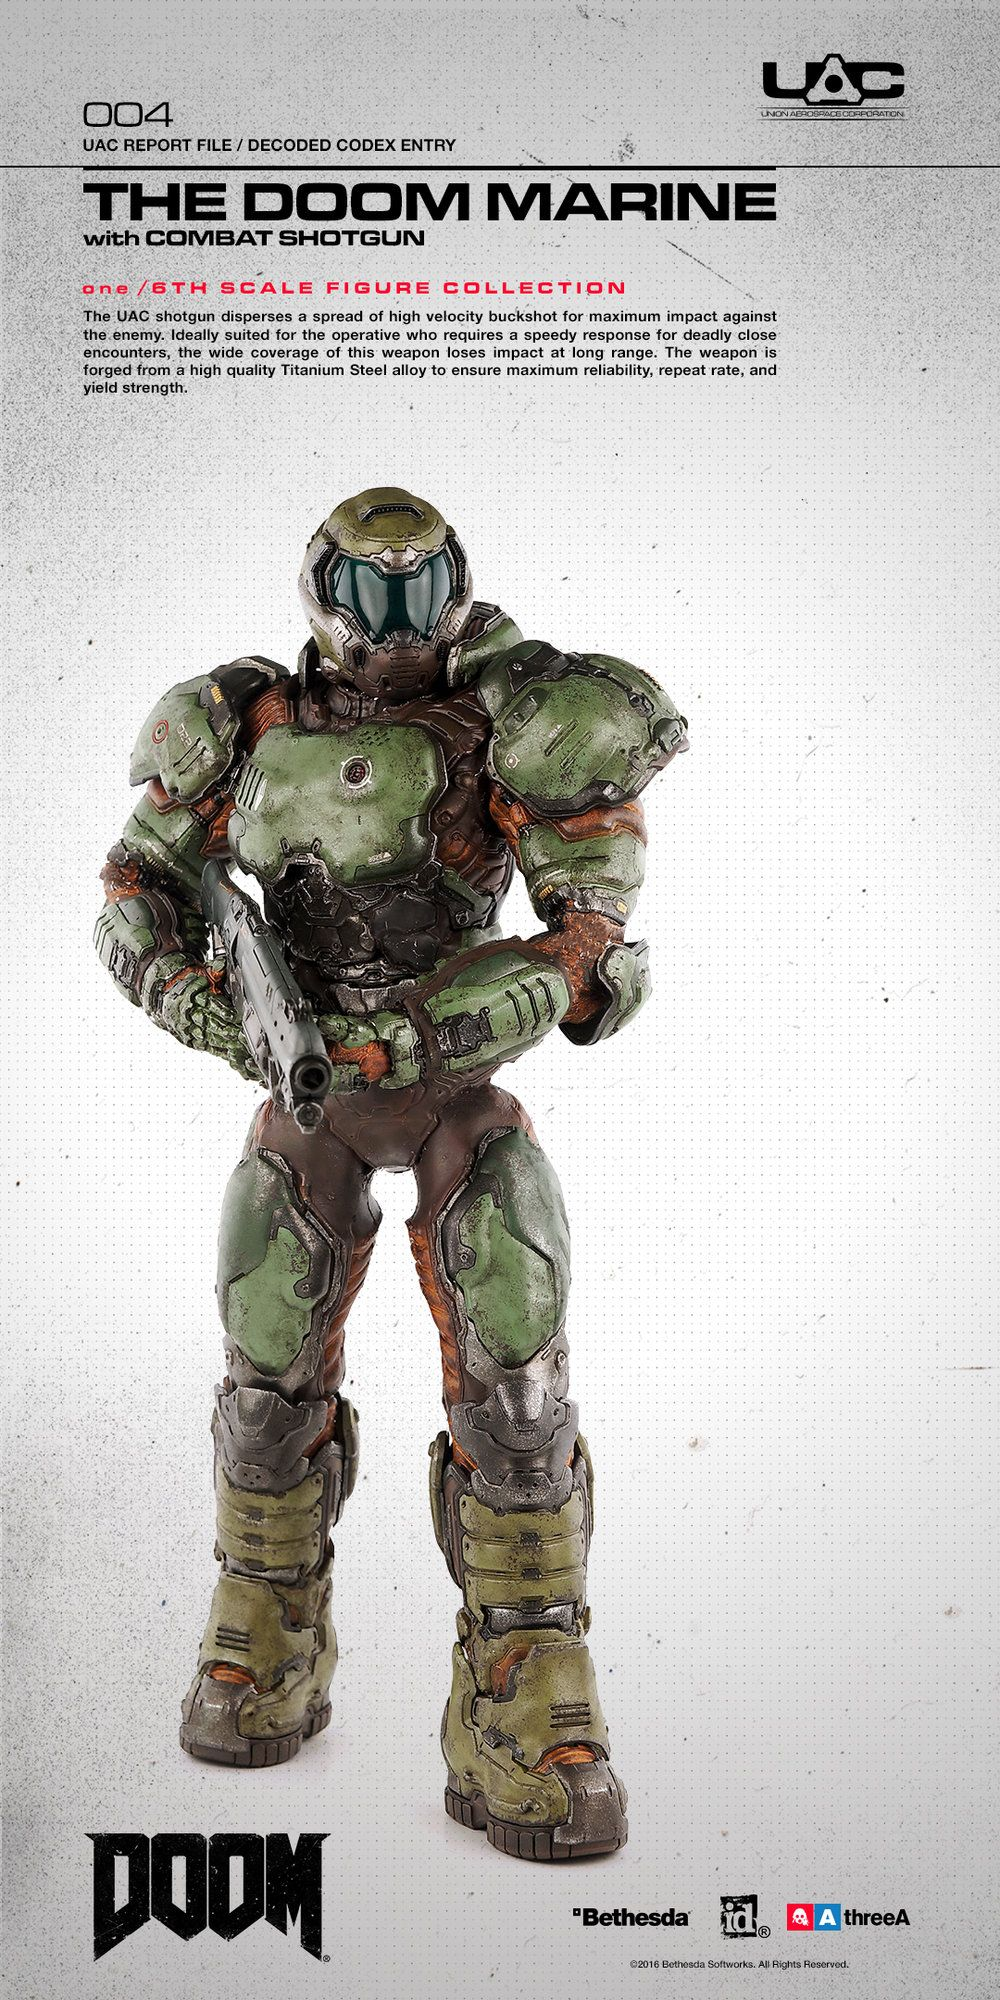 Last month, 3A revealed their new Doom Marine 1/6 Scale